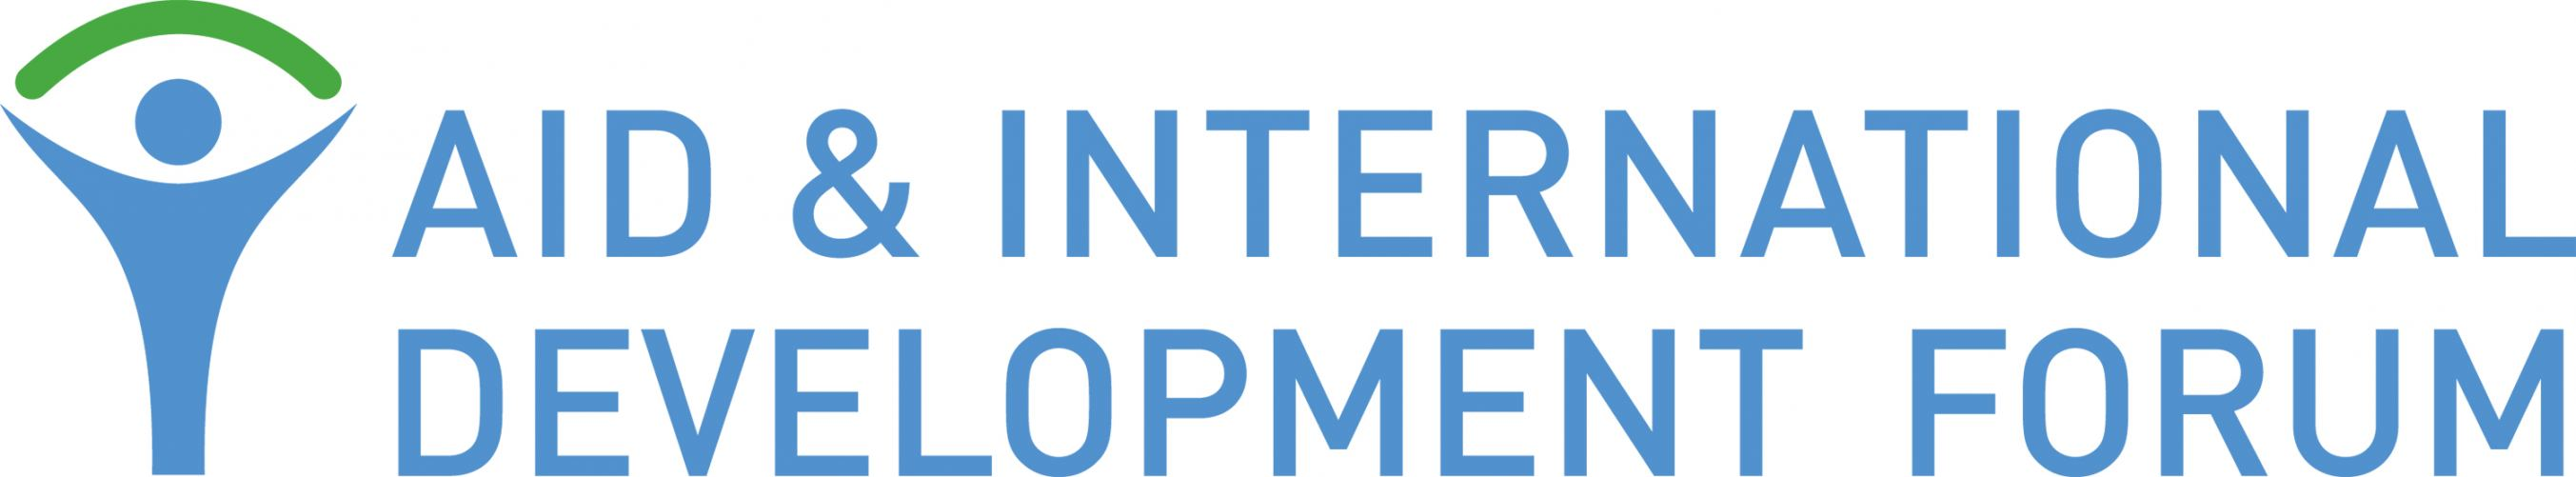 Aid and International Development Forum Logo